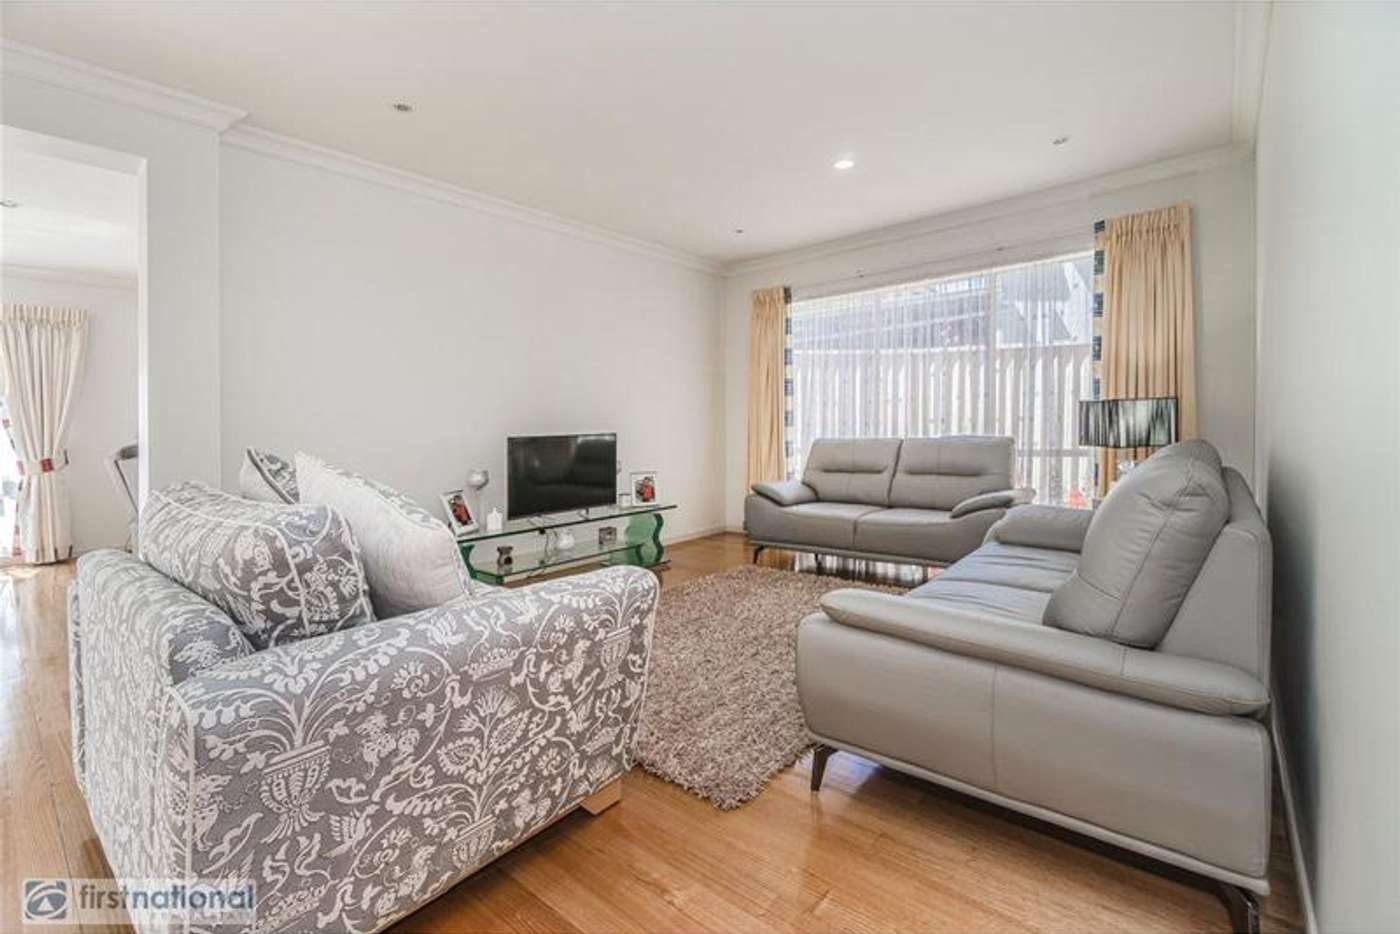 Sixth view of Homely house listing, 12 Thomas Street, Roxburgh Park VIC 3064